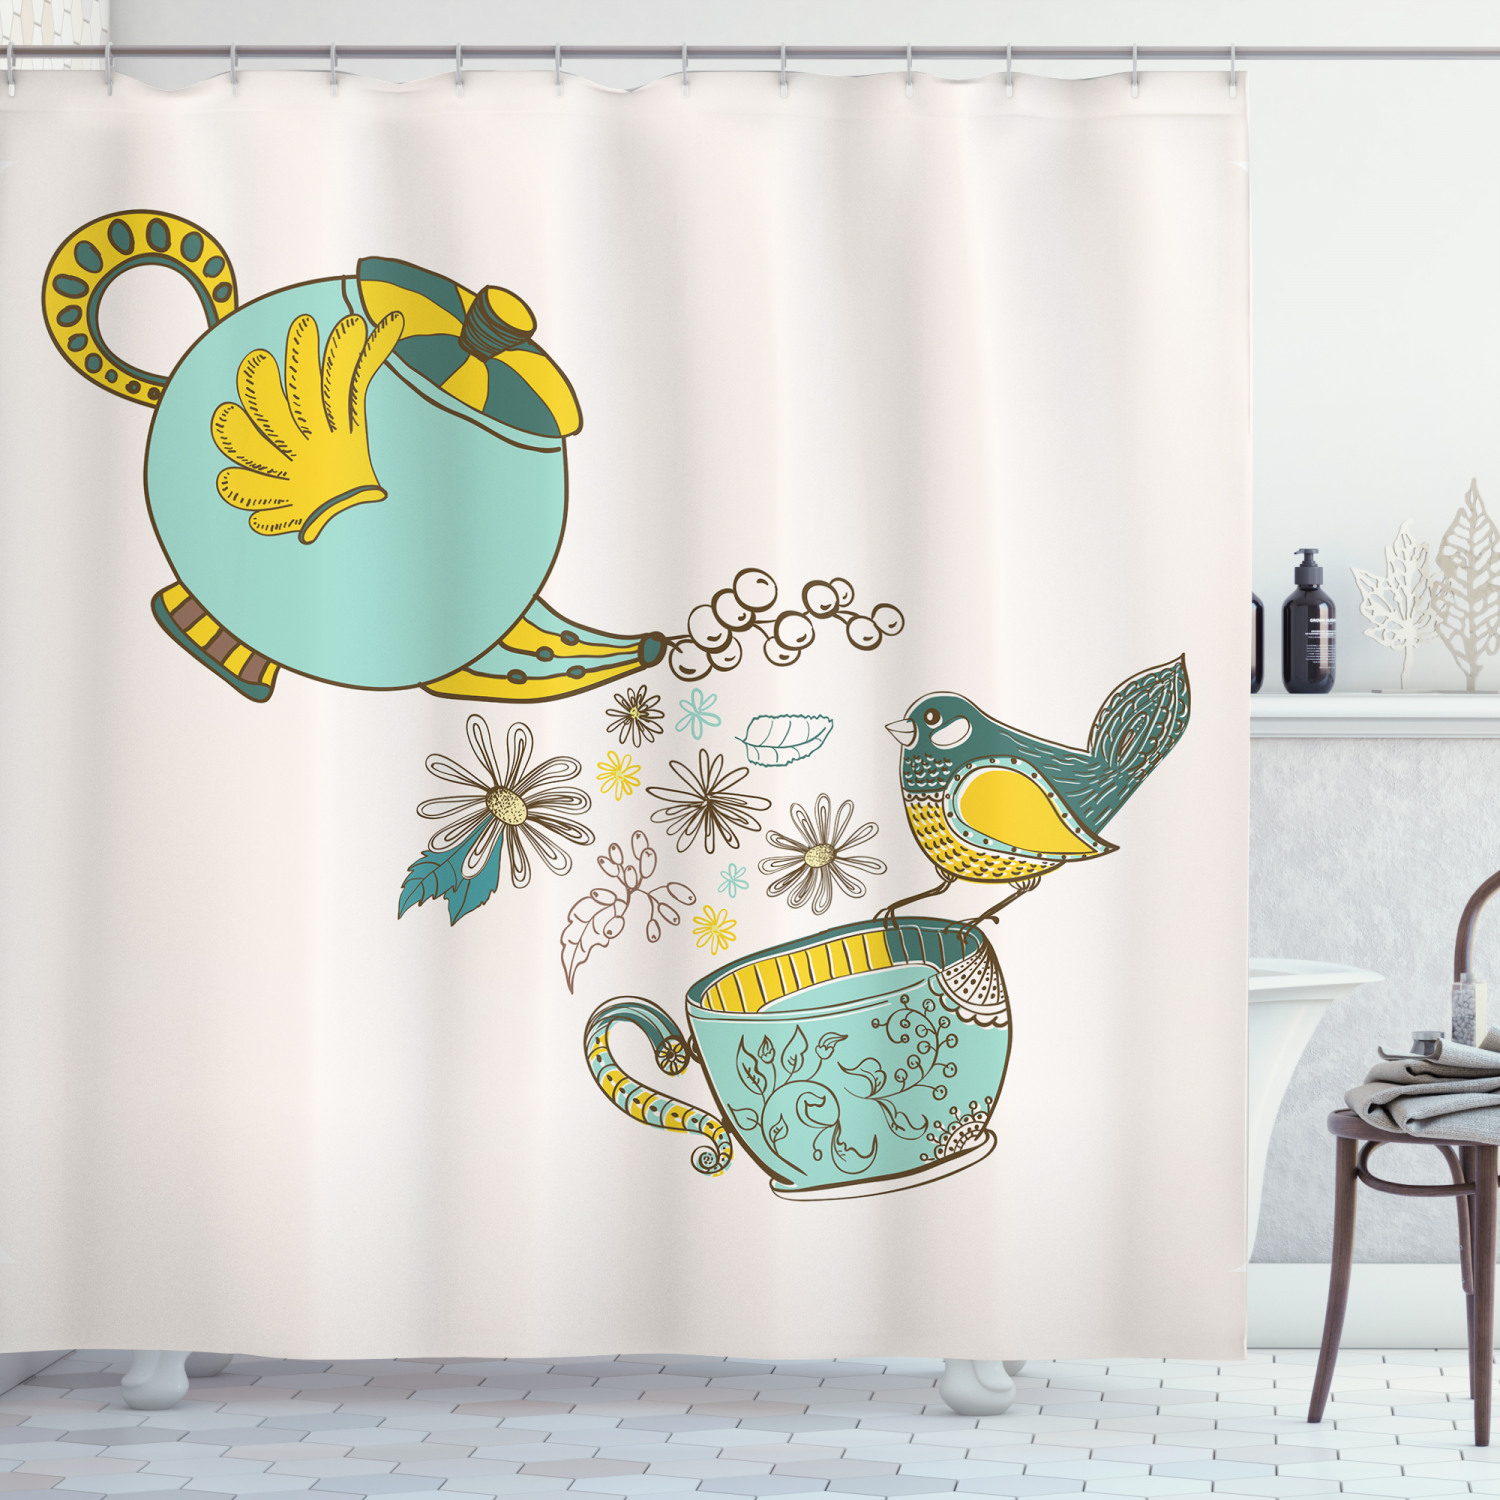 tea shower curtain bird drinking winged teapot alice in wonderland style friends flowers spring fabric bathroom set with hooks 69w x 84l inches